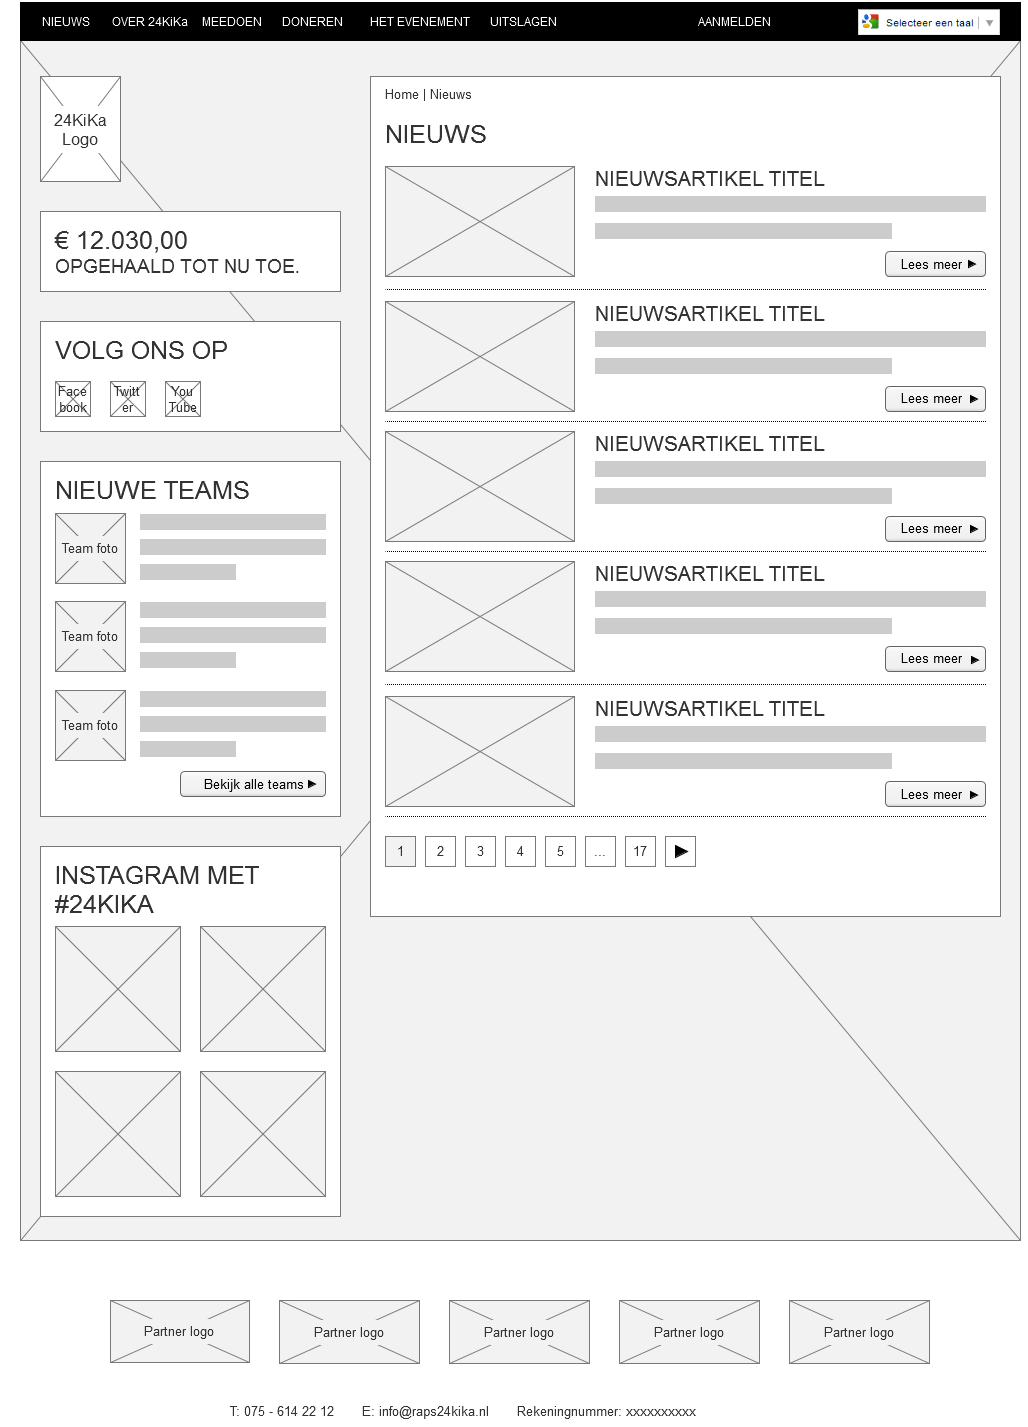 vanity-tracy_project_2013_24kika_wireframes_03_news-overview